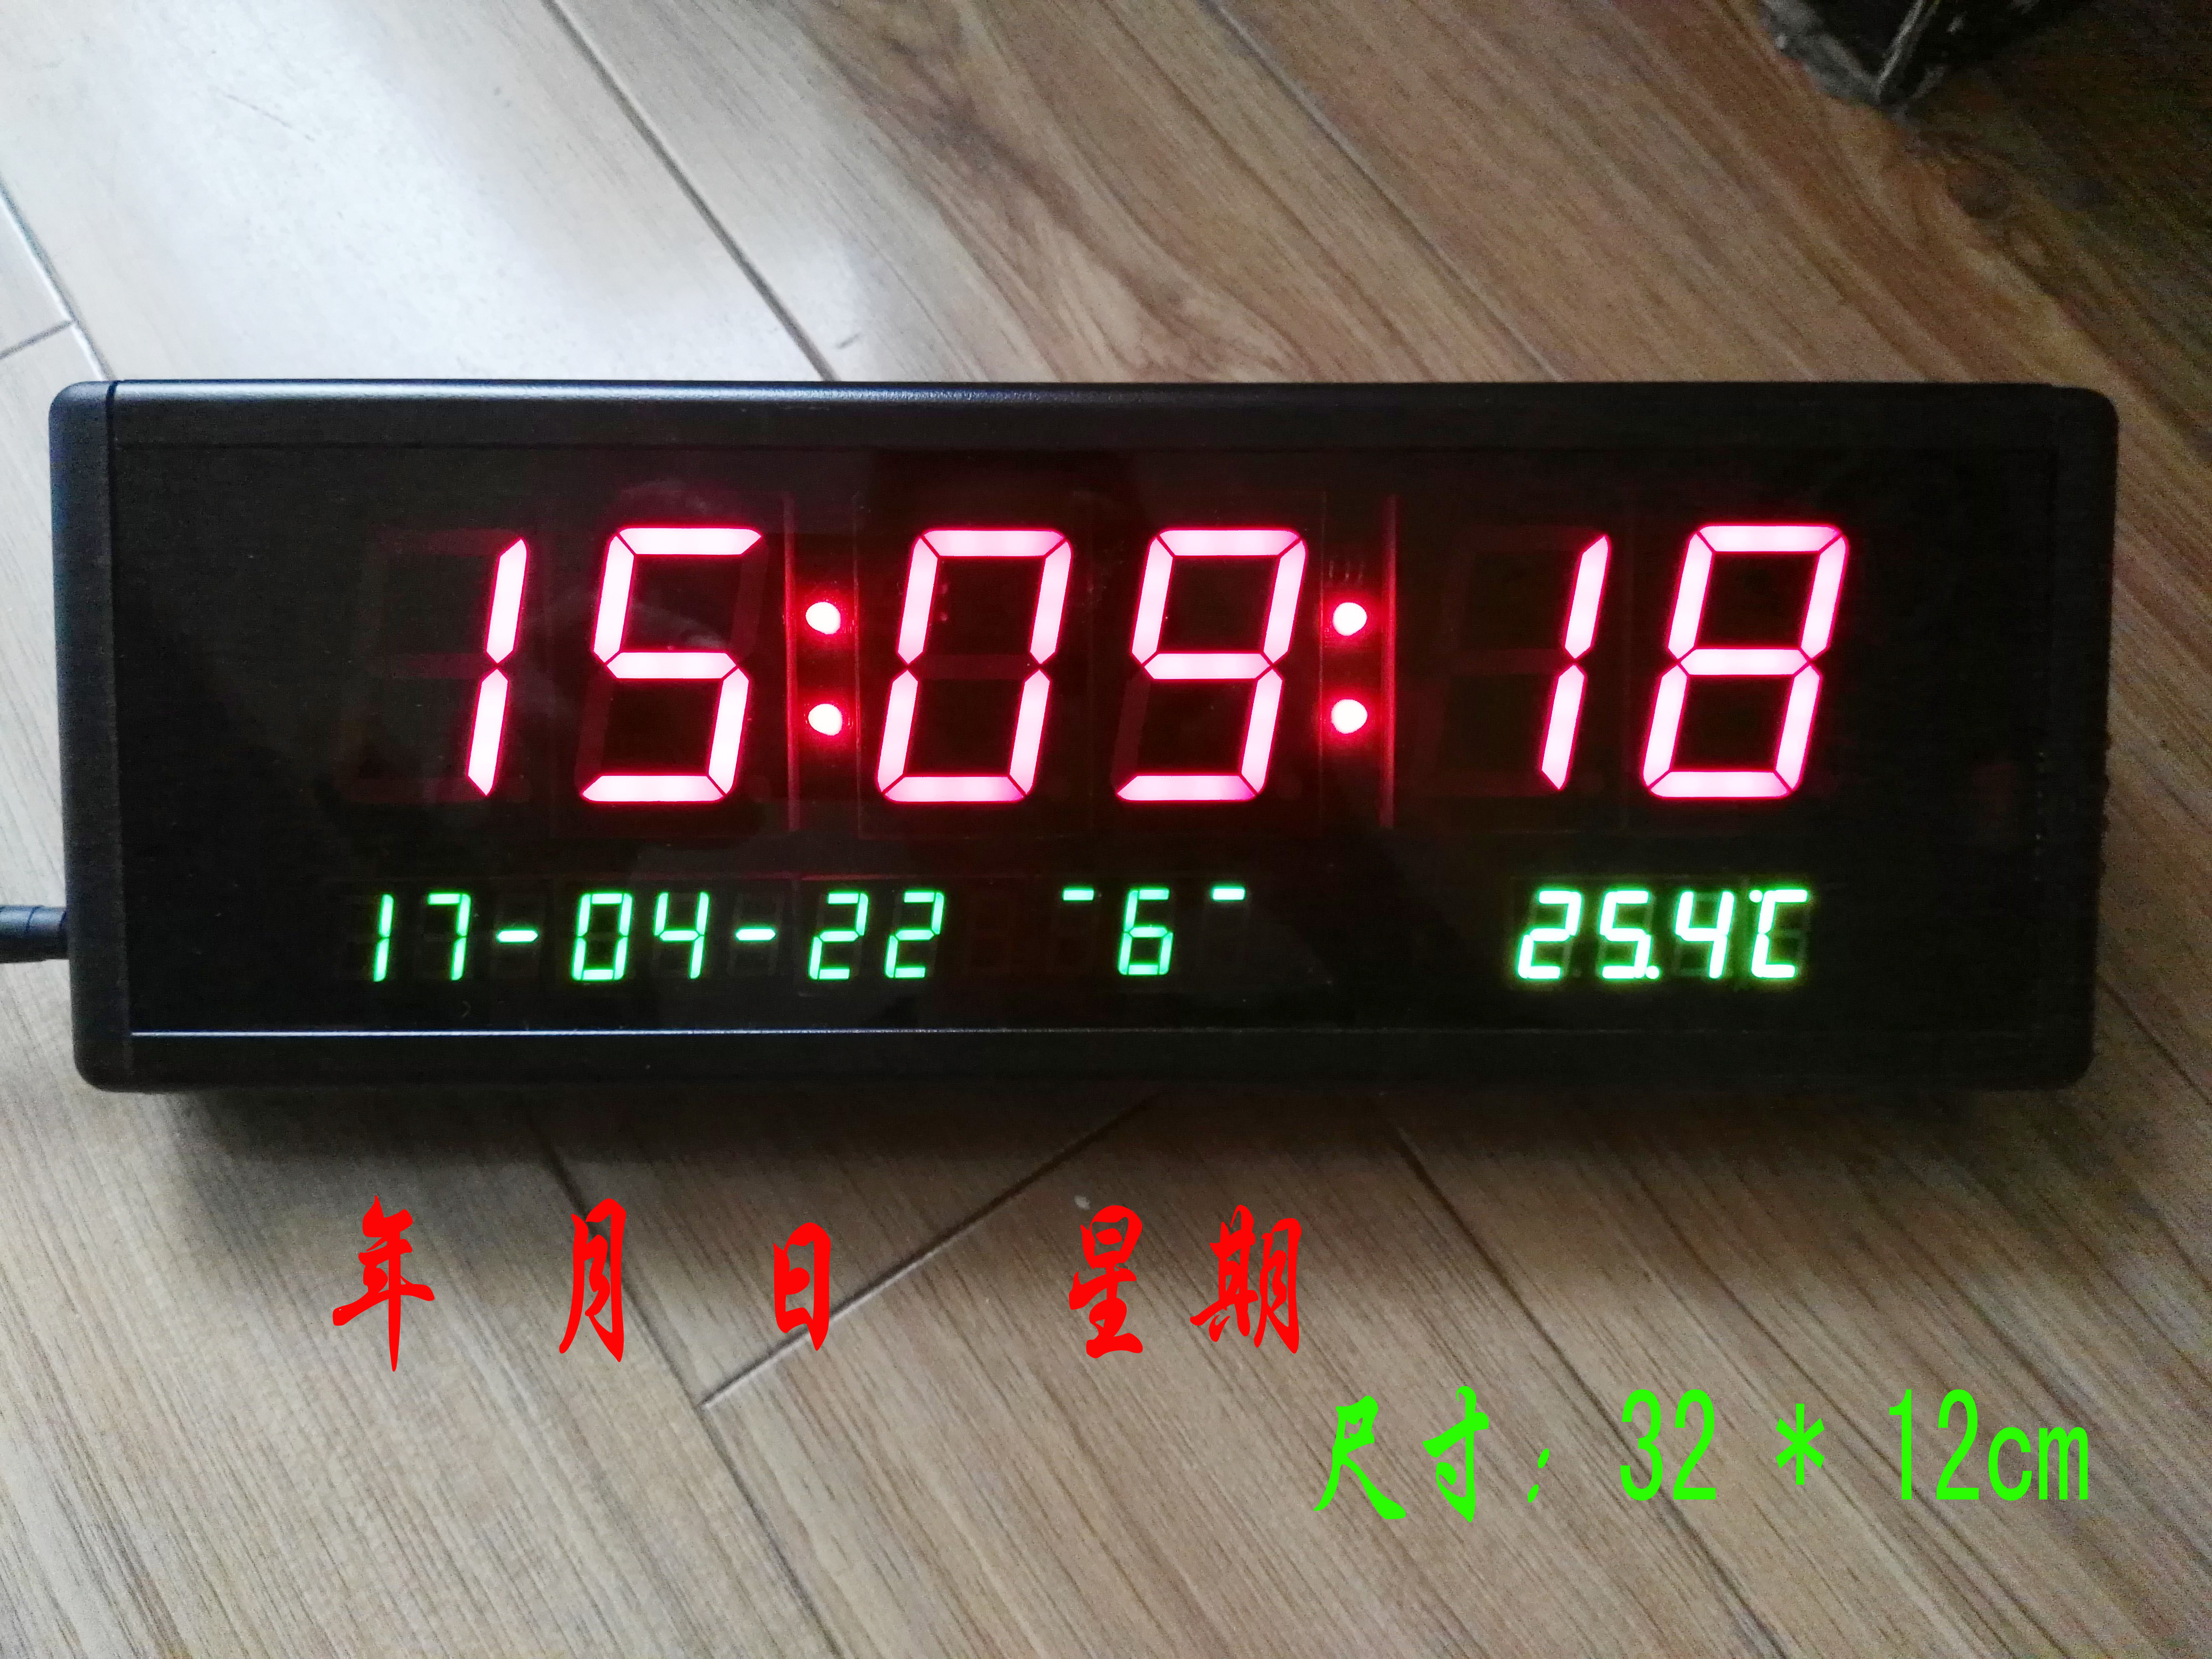 Digital electronic clock / interior decoration / large screen display / temperature date display at the same time paddington at large